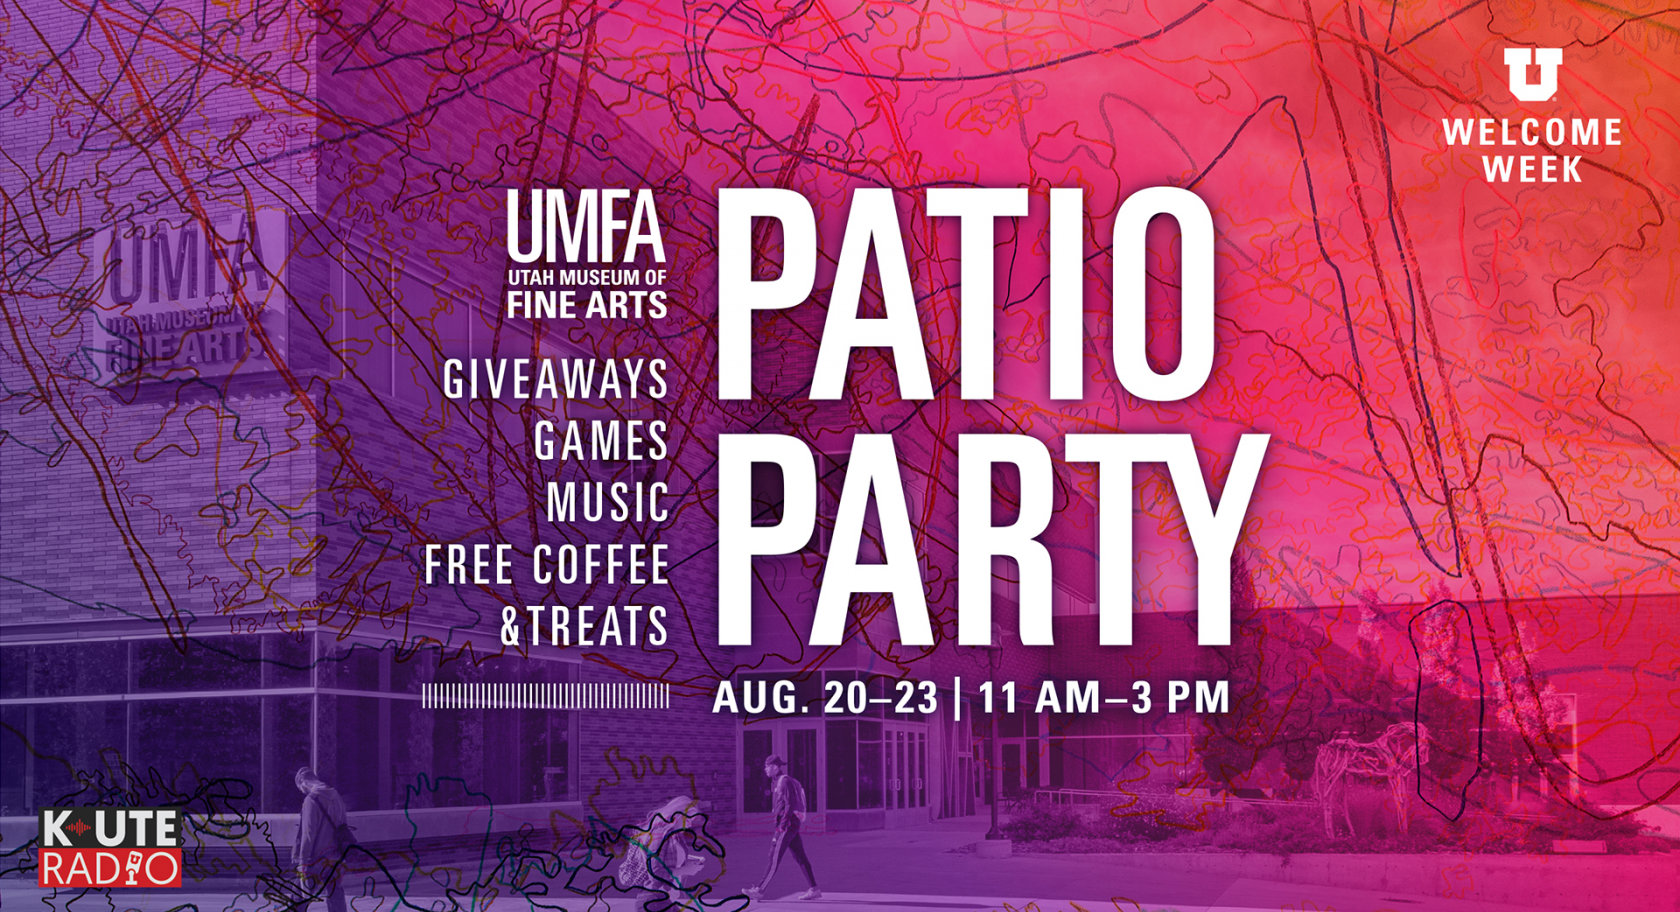 patio party info